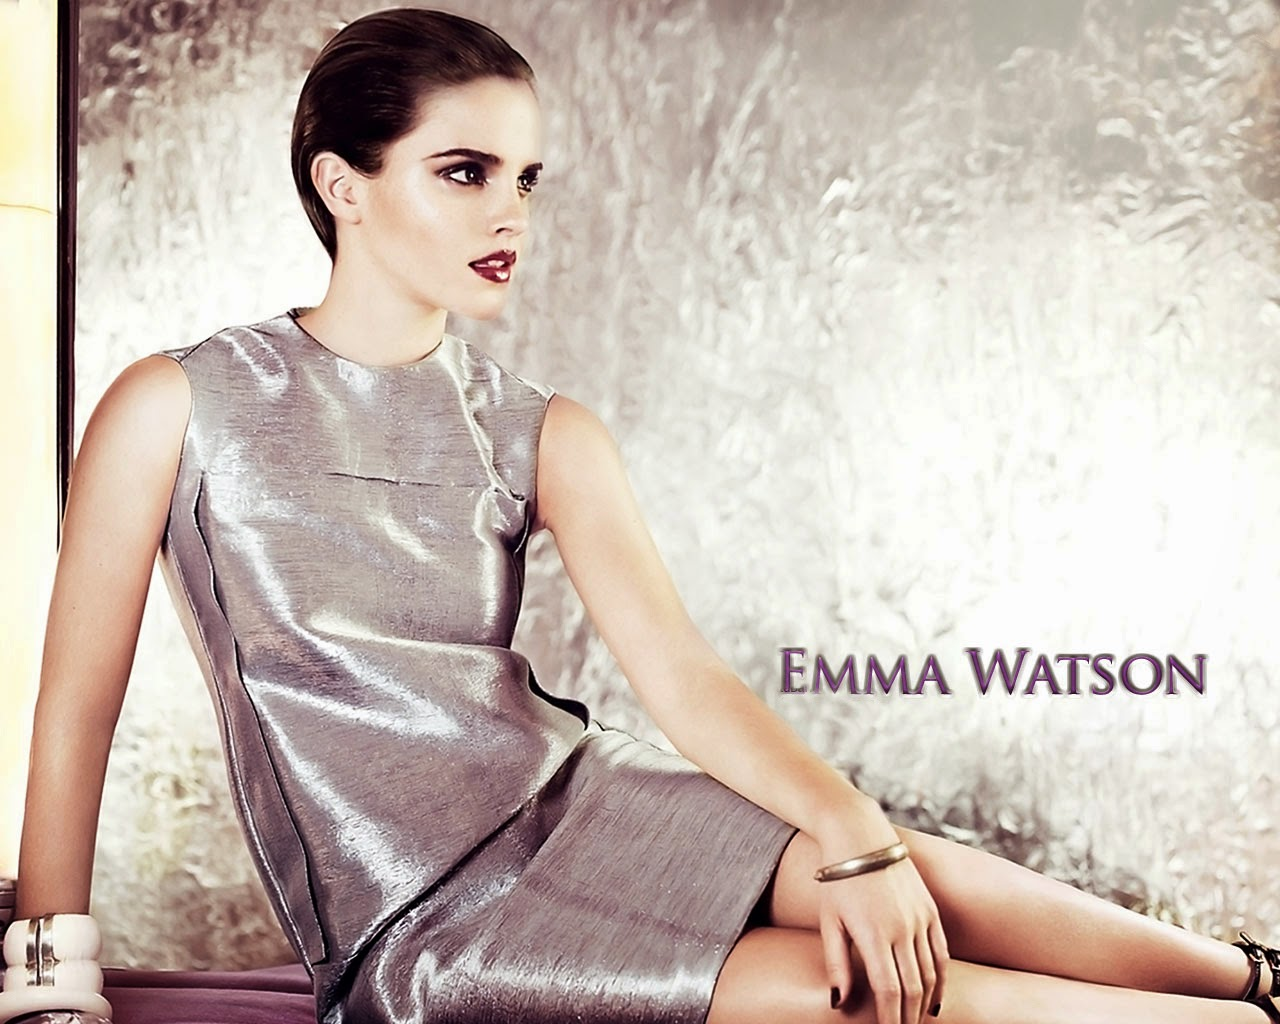 Emma watson hd hot wallpapers 2012 all hollywood stars for Housedesigner com plans